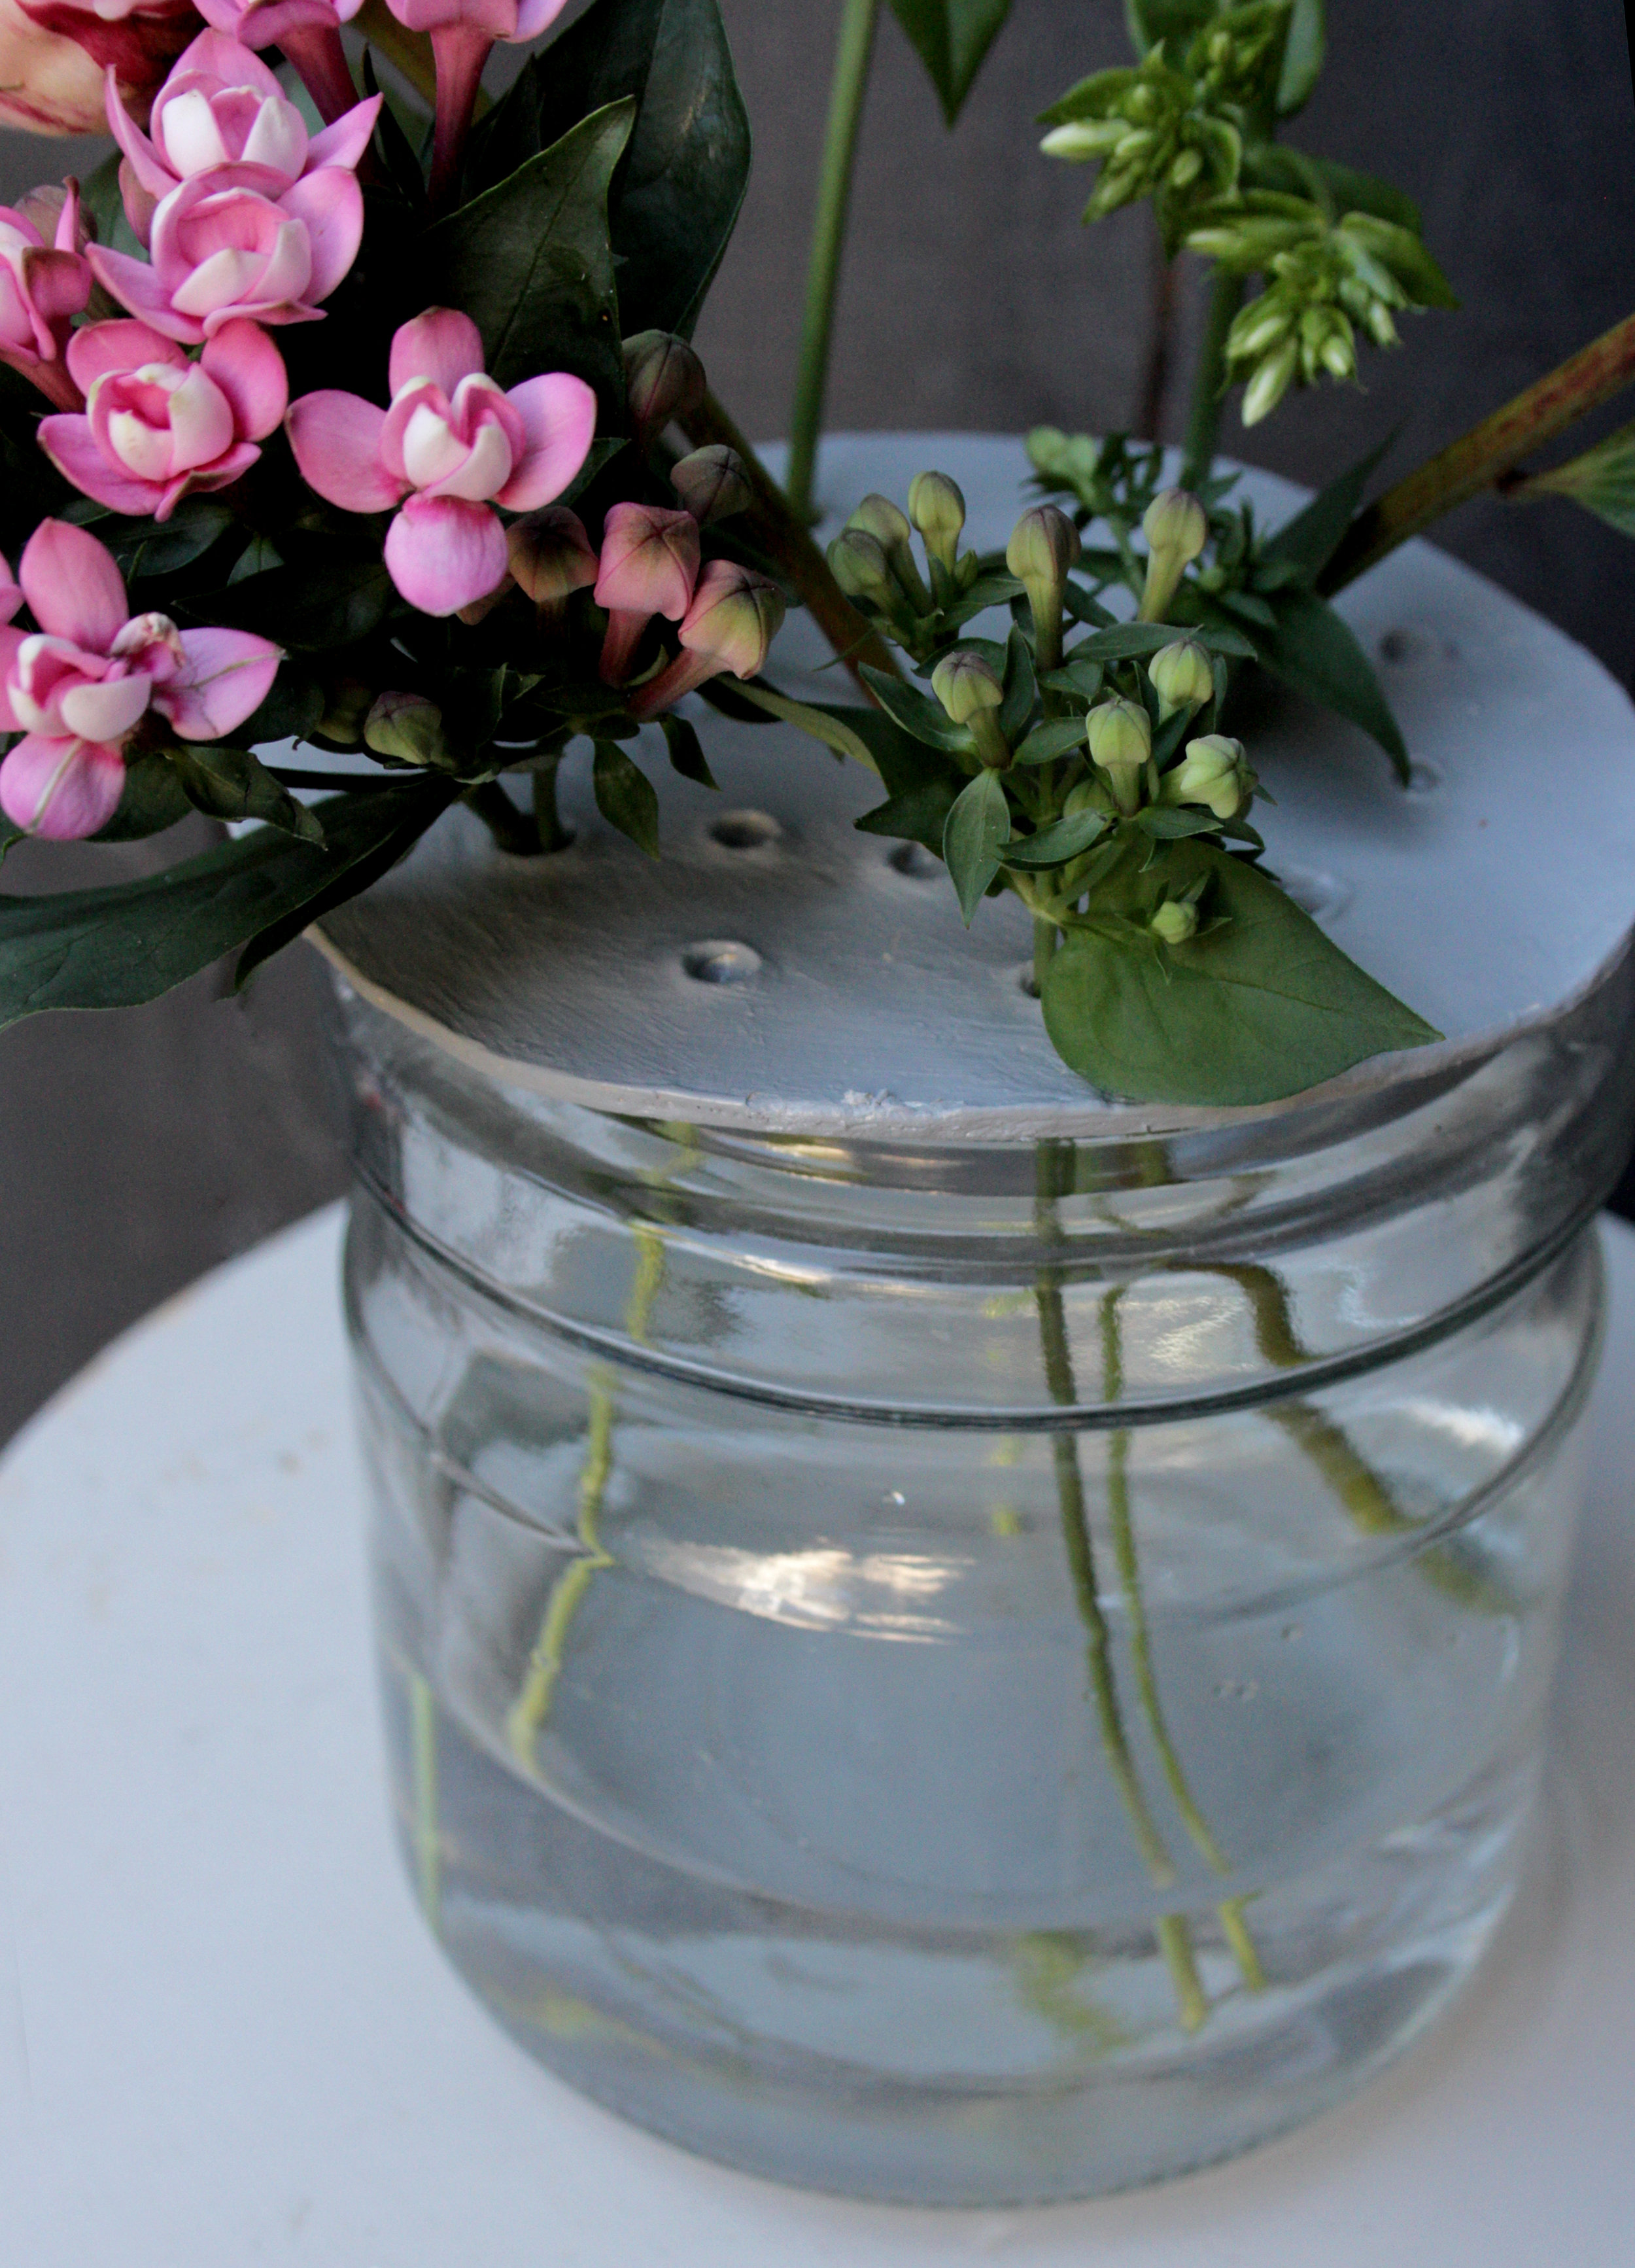 Clay flower disc to turn a jar into a cute vase by www.hestershandmadehome.com